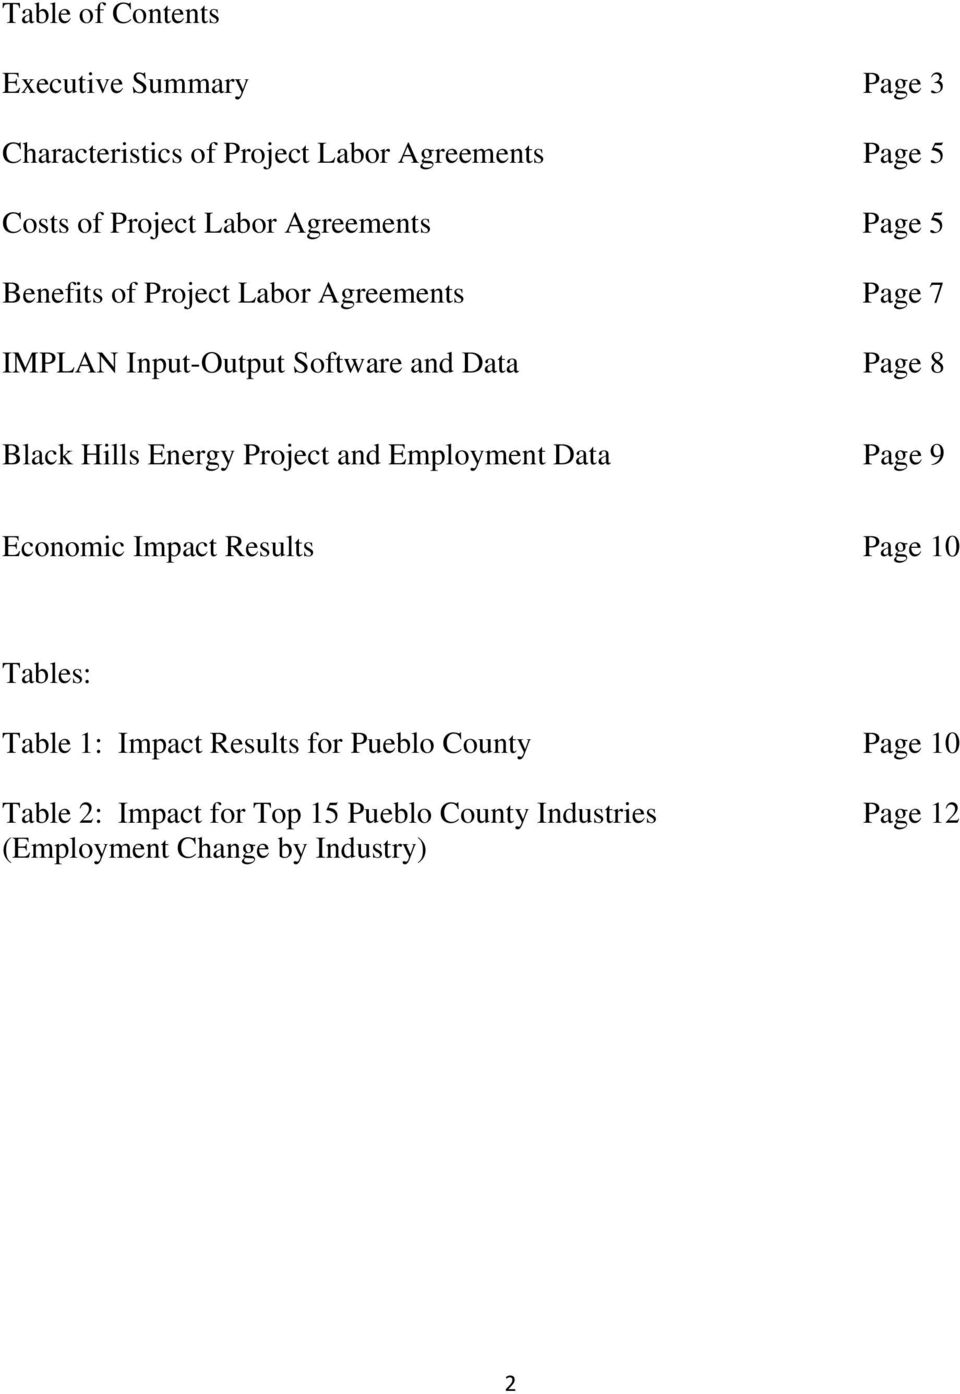 Black Hills Energy Project and Employment Data Page 9 Economic Impact Results Page 10 Tables: Table 1: Impact